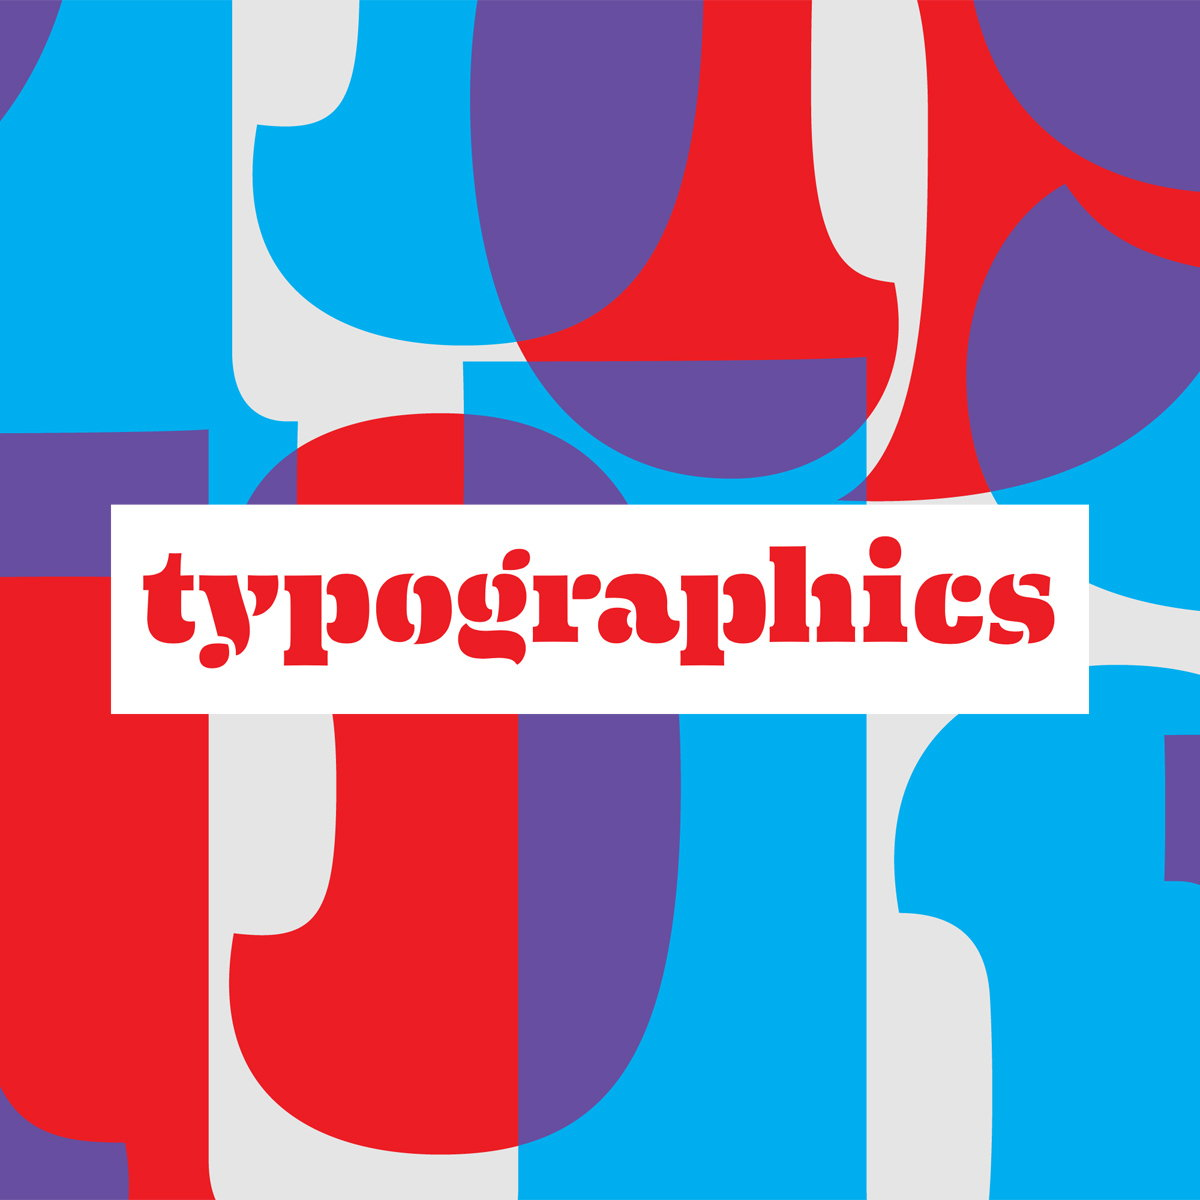 Typographics 2016 - A Design Festival for People Who Use Type